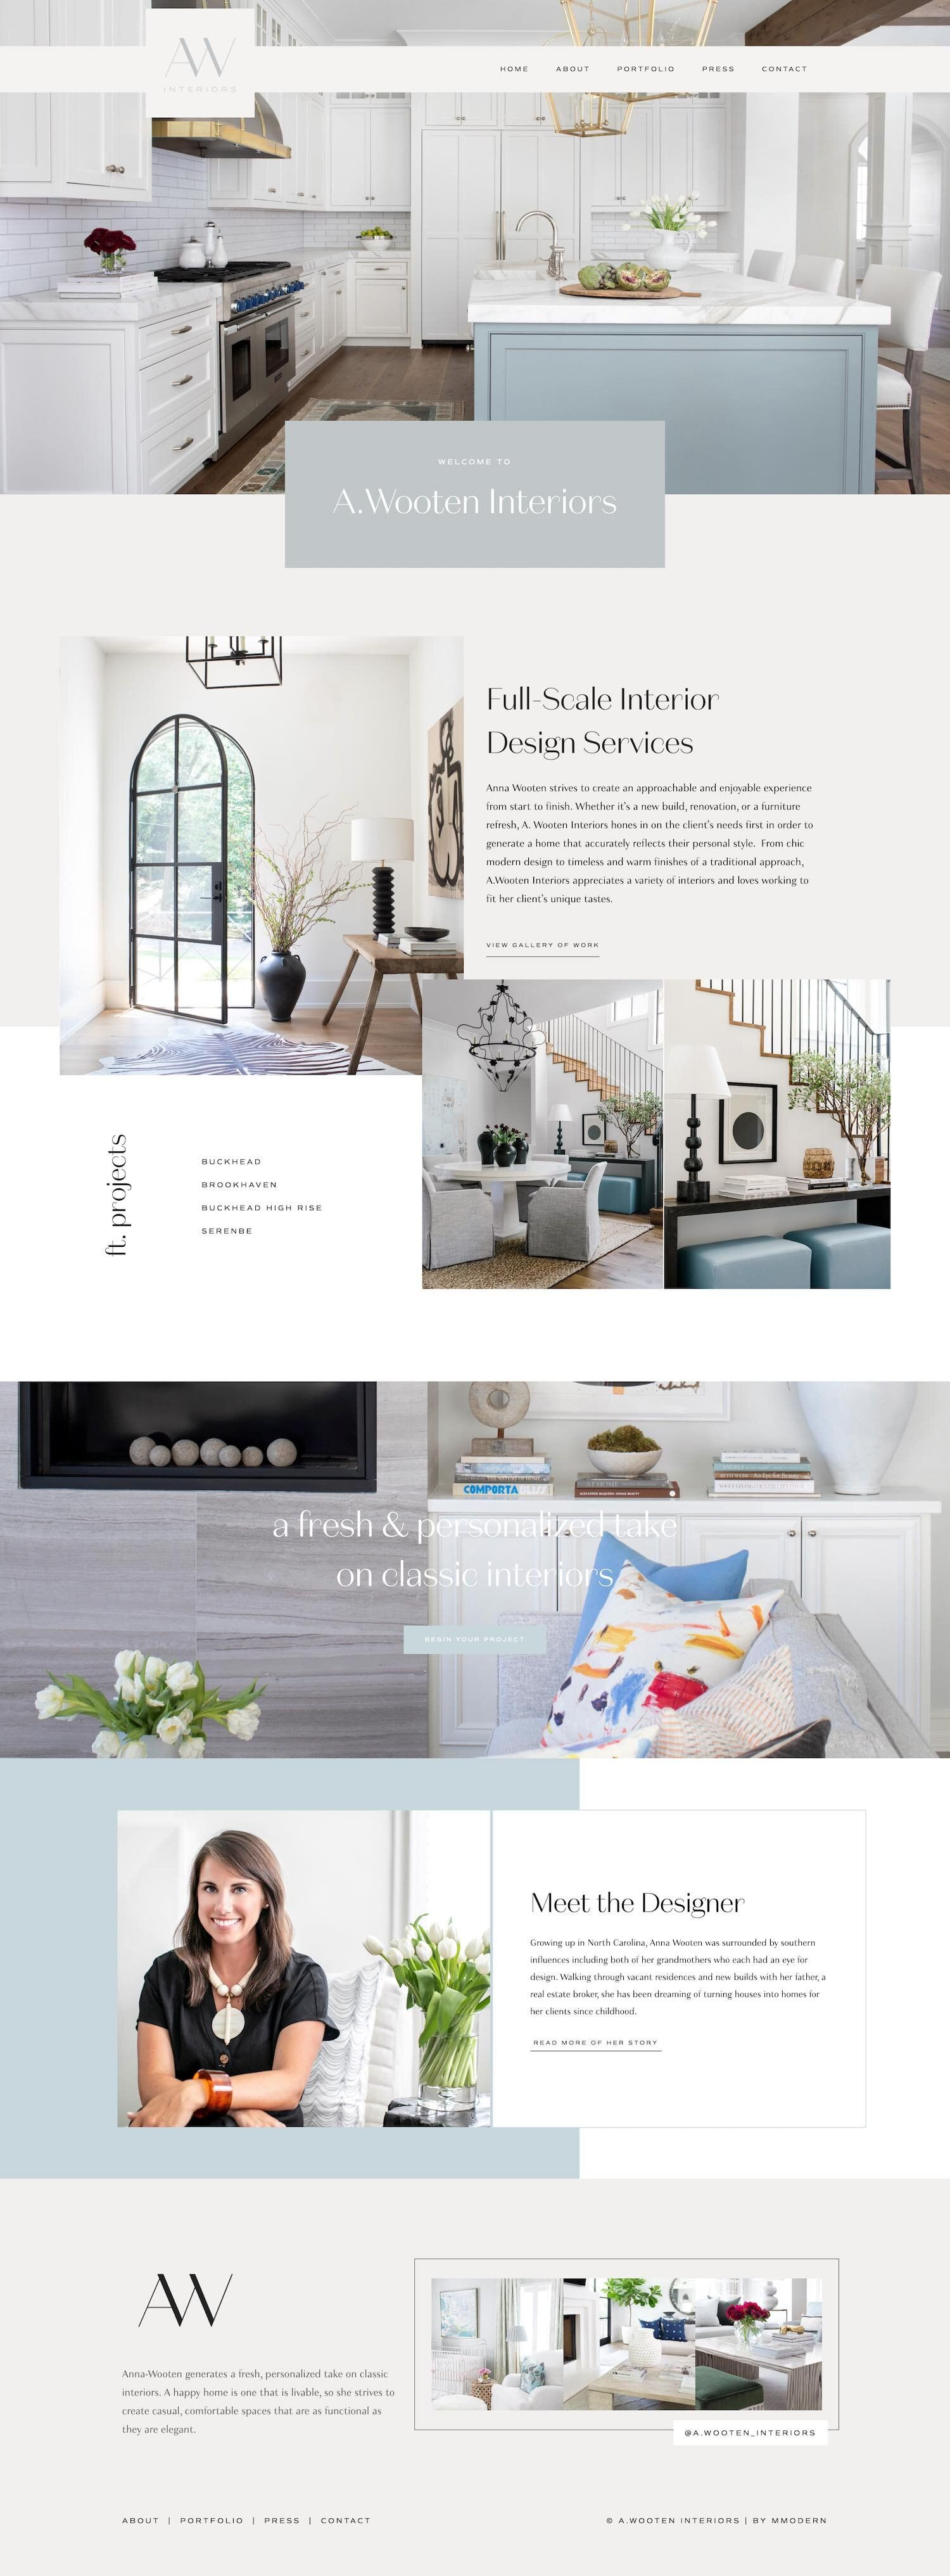 20 Best Example Squarespace Websites Service Based Business Edition Paige Brunton Squarespace Templates Squarespace Designer Courses In 2021 Squarespace Design Squarespace Website Web Design Inspiration Layout